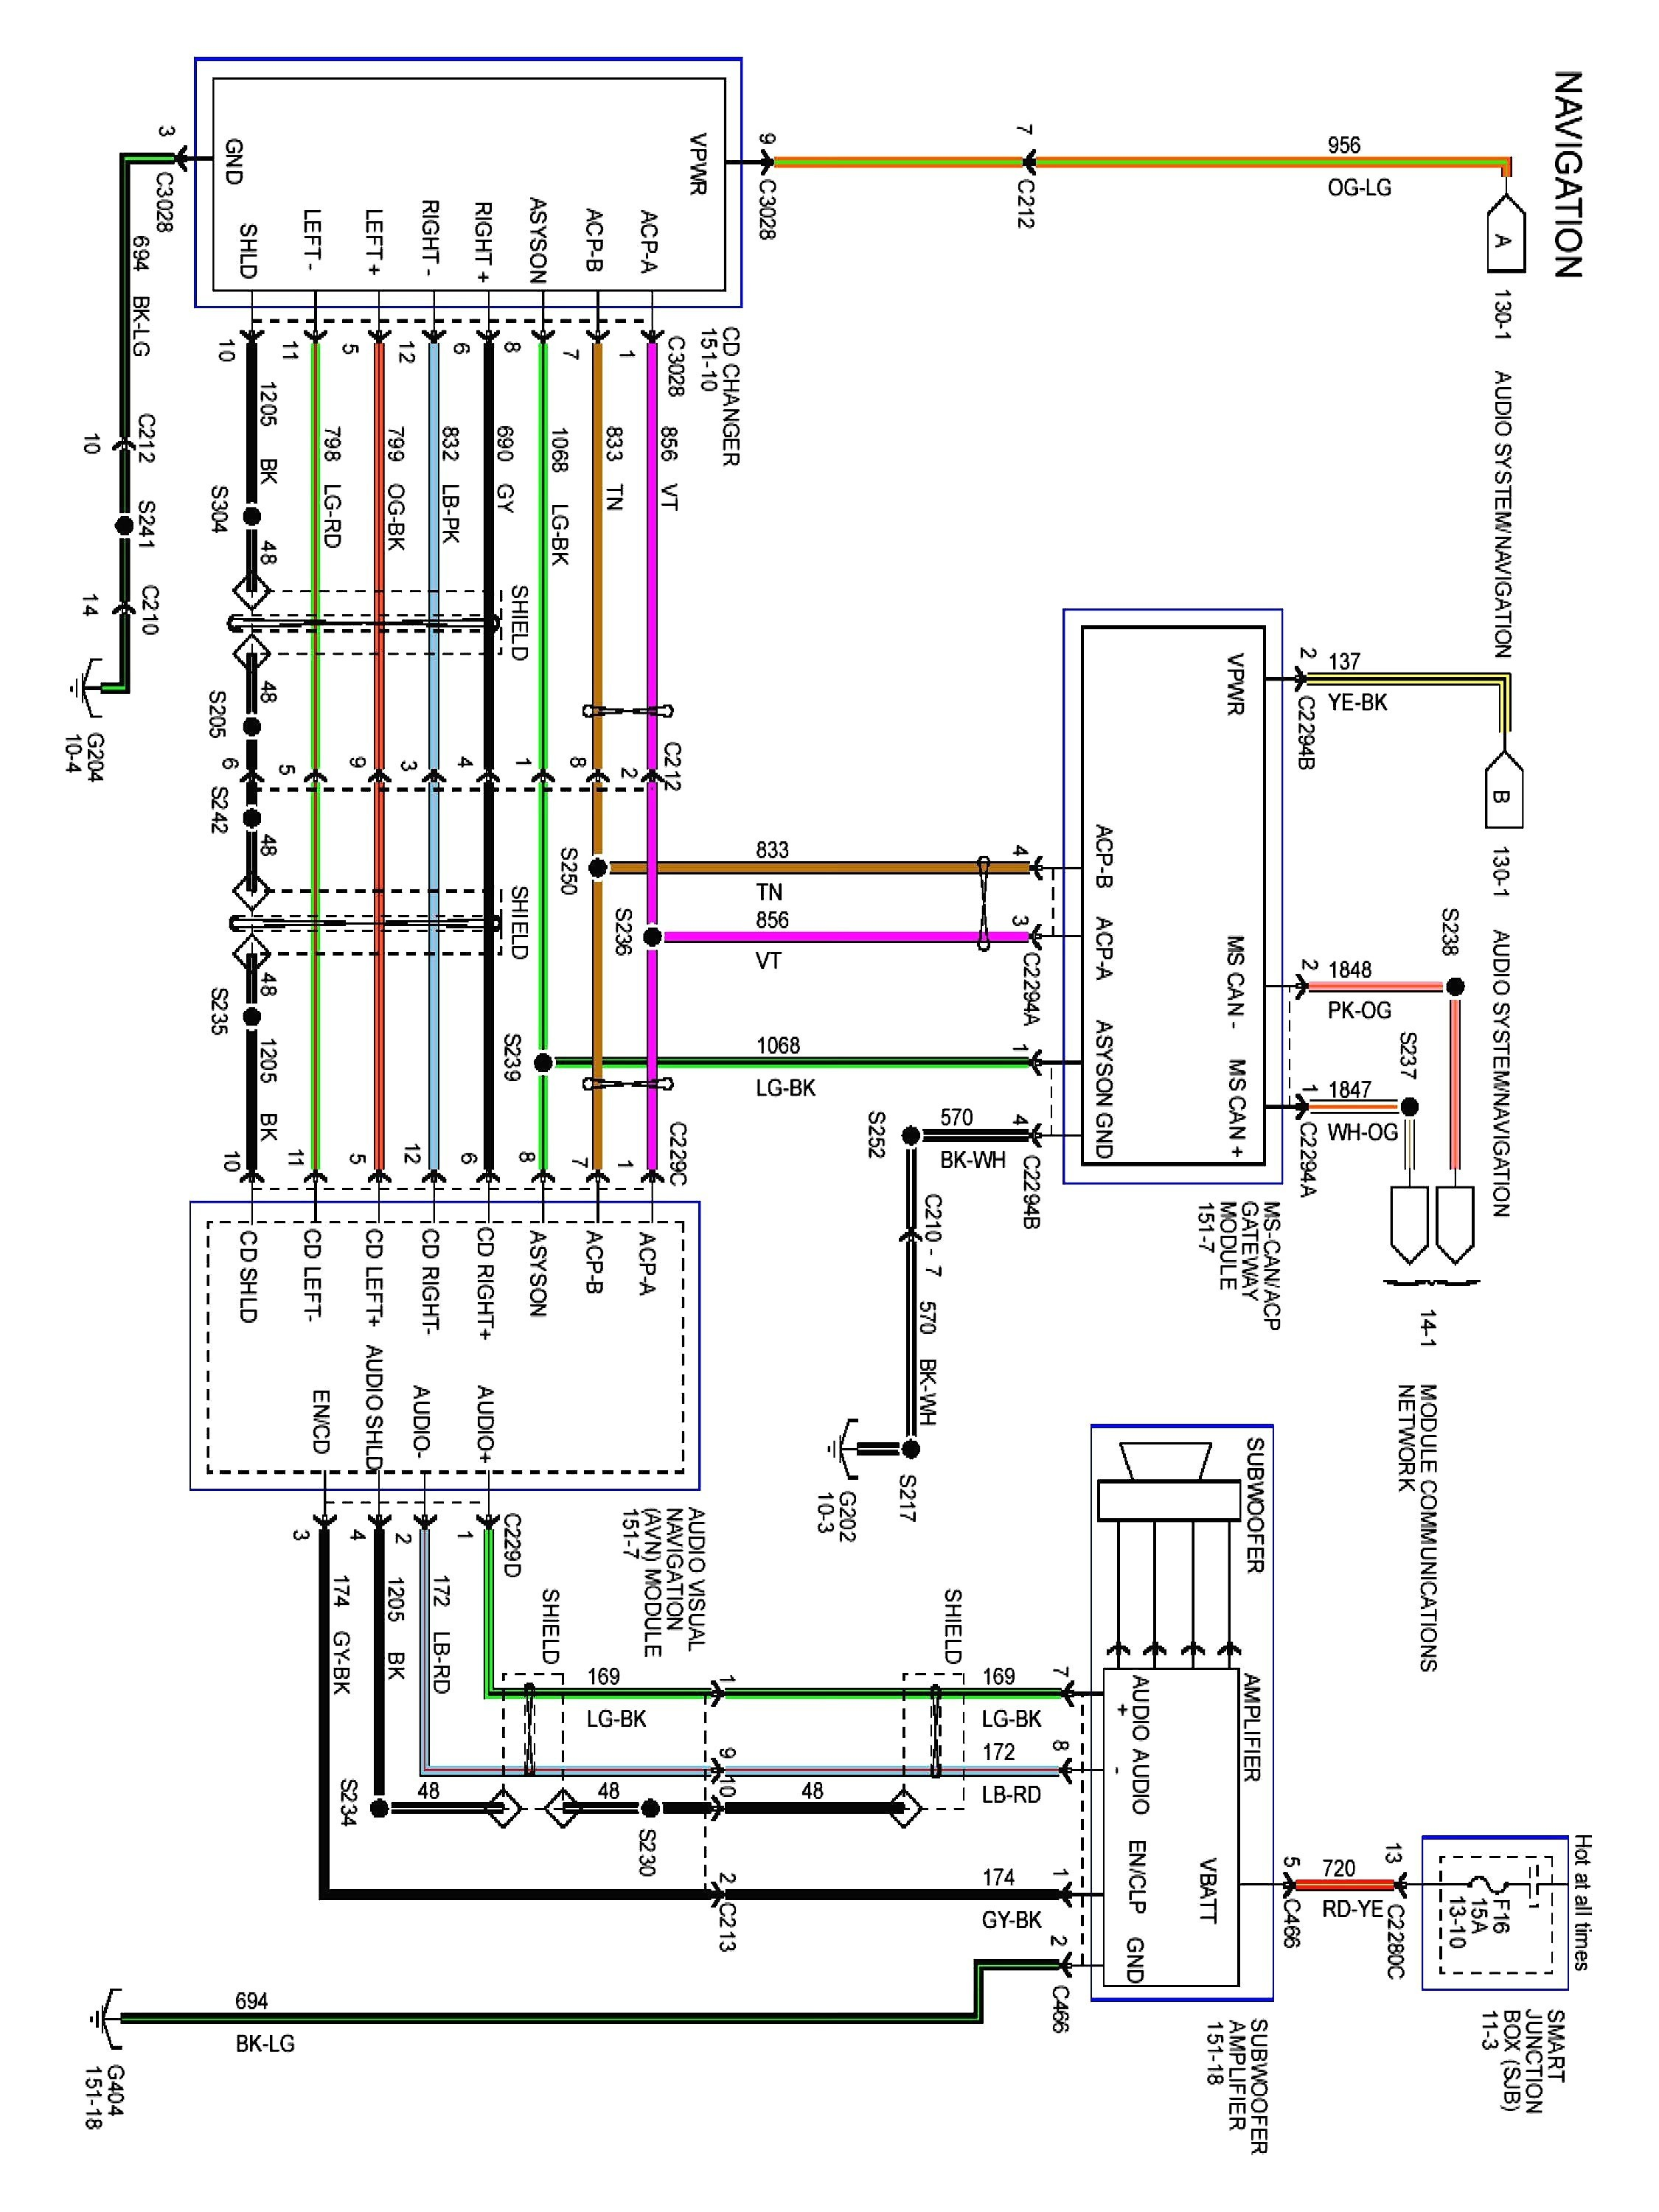 2008 ford Fusion Engine Diagram 08 ford Focus Wiring Harness Diagram List Schematic Circuit Of 2008 ford Fusion Engine Diagram